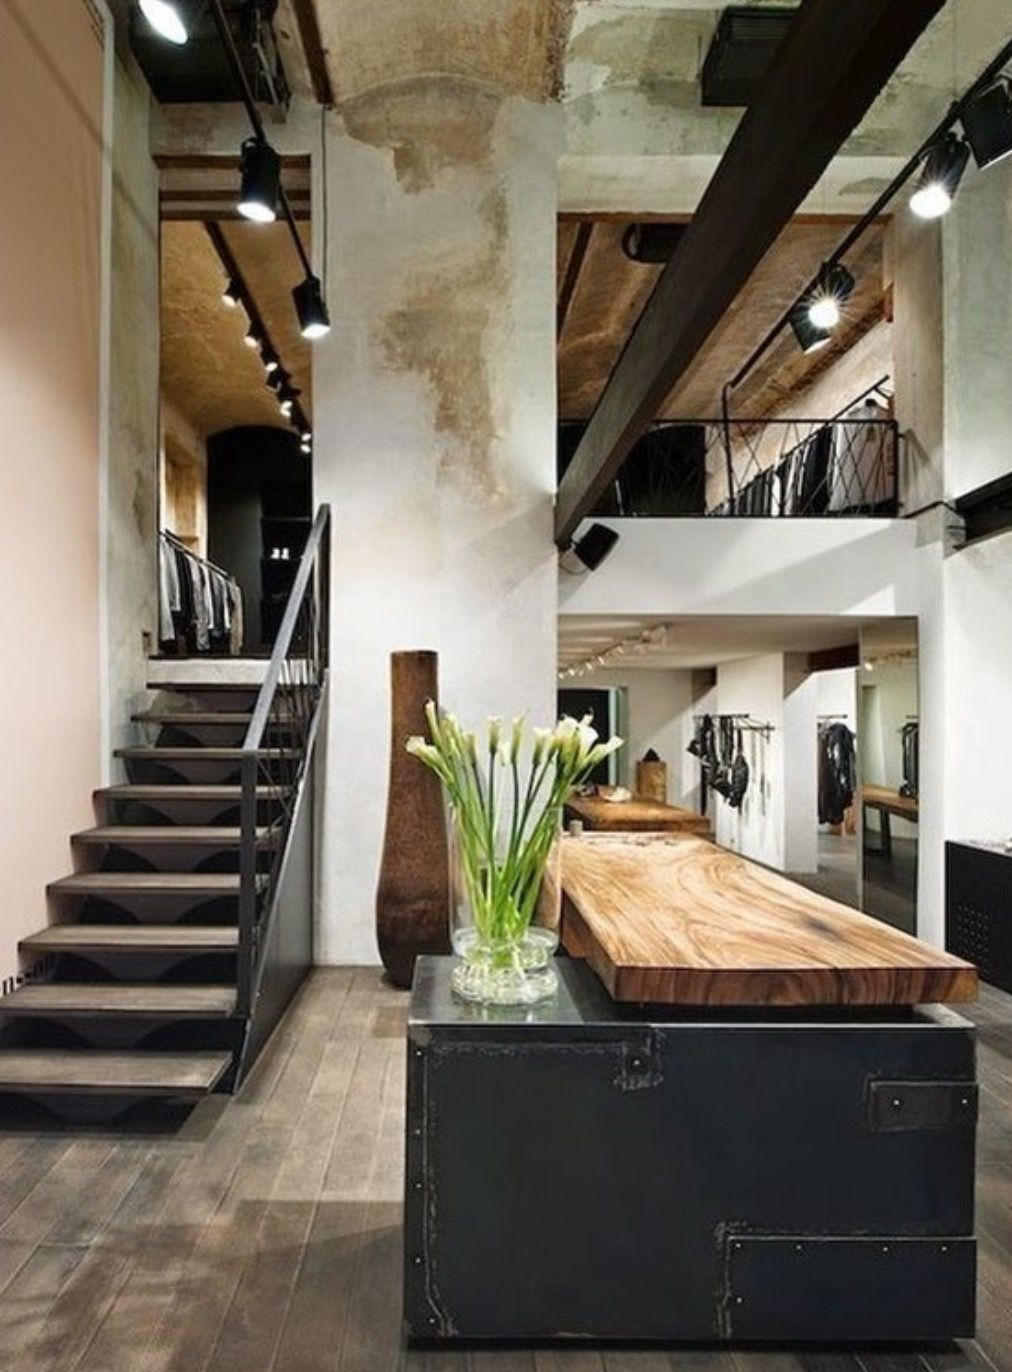 I Love The Combination Of Wood And The Industrial Rustic Look For